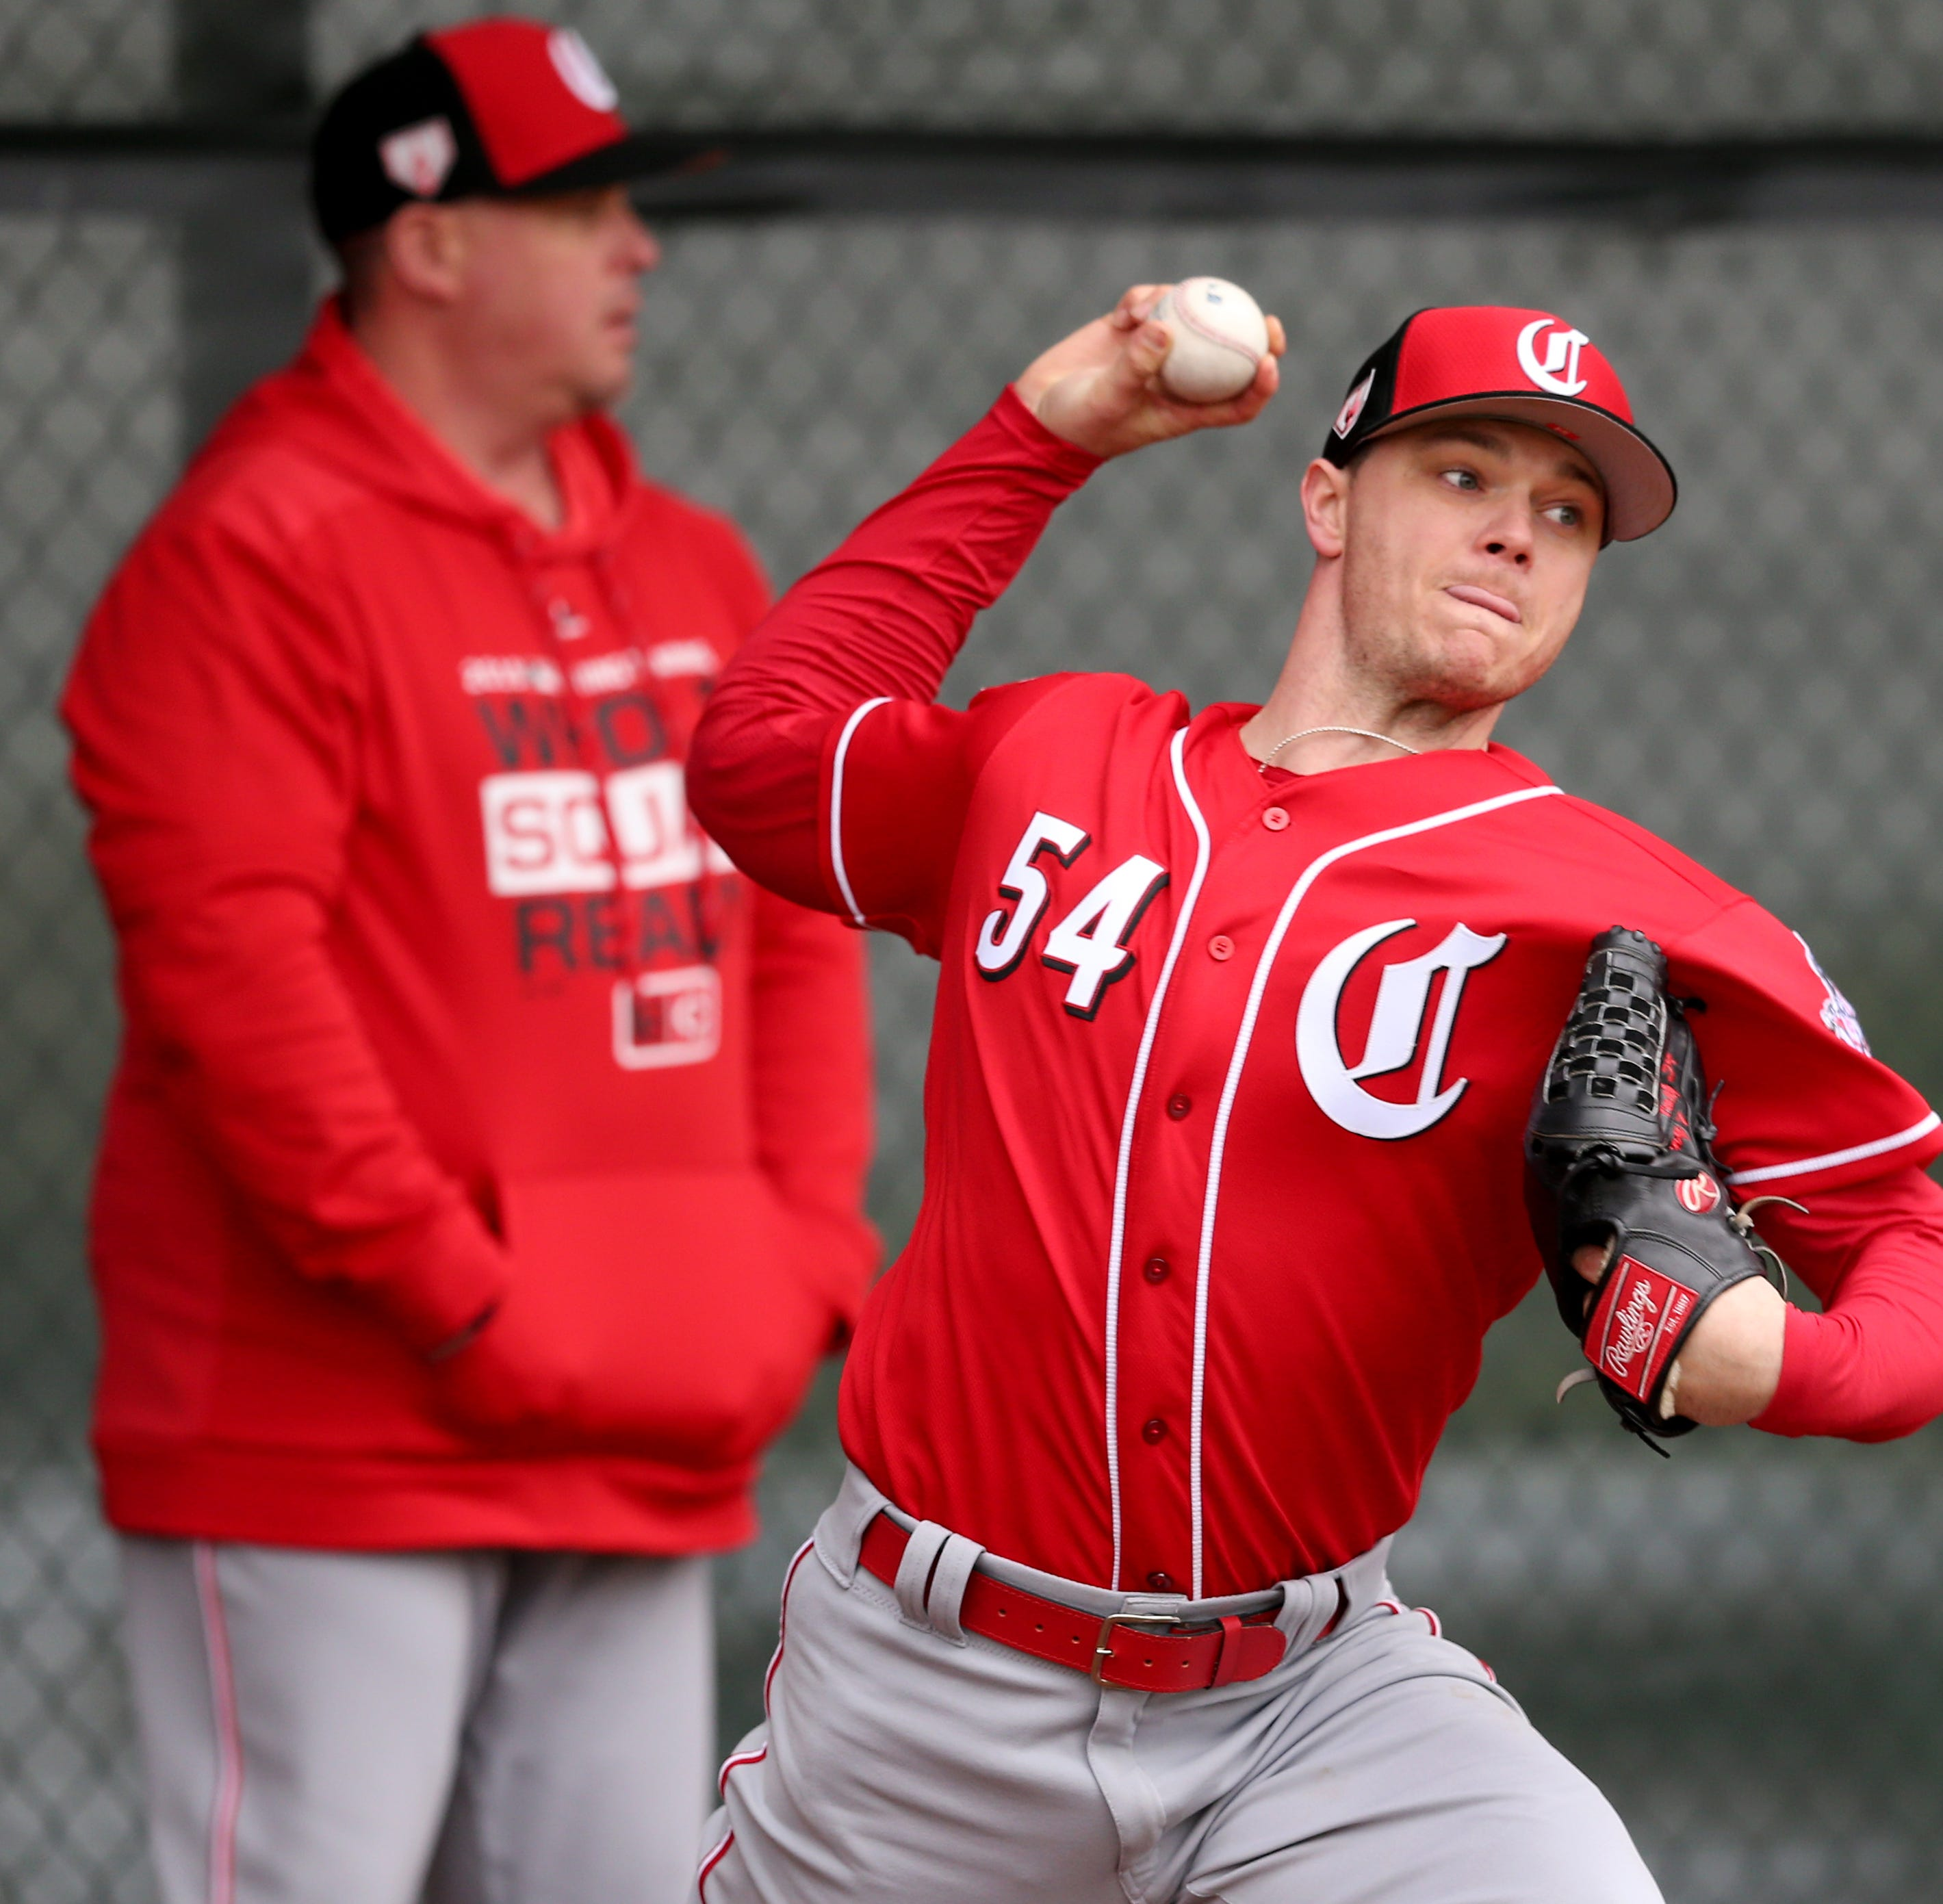 Cincinnati Reds' Sonny Gray feeling 'great' after returning to mound for 1st time in a week